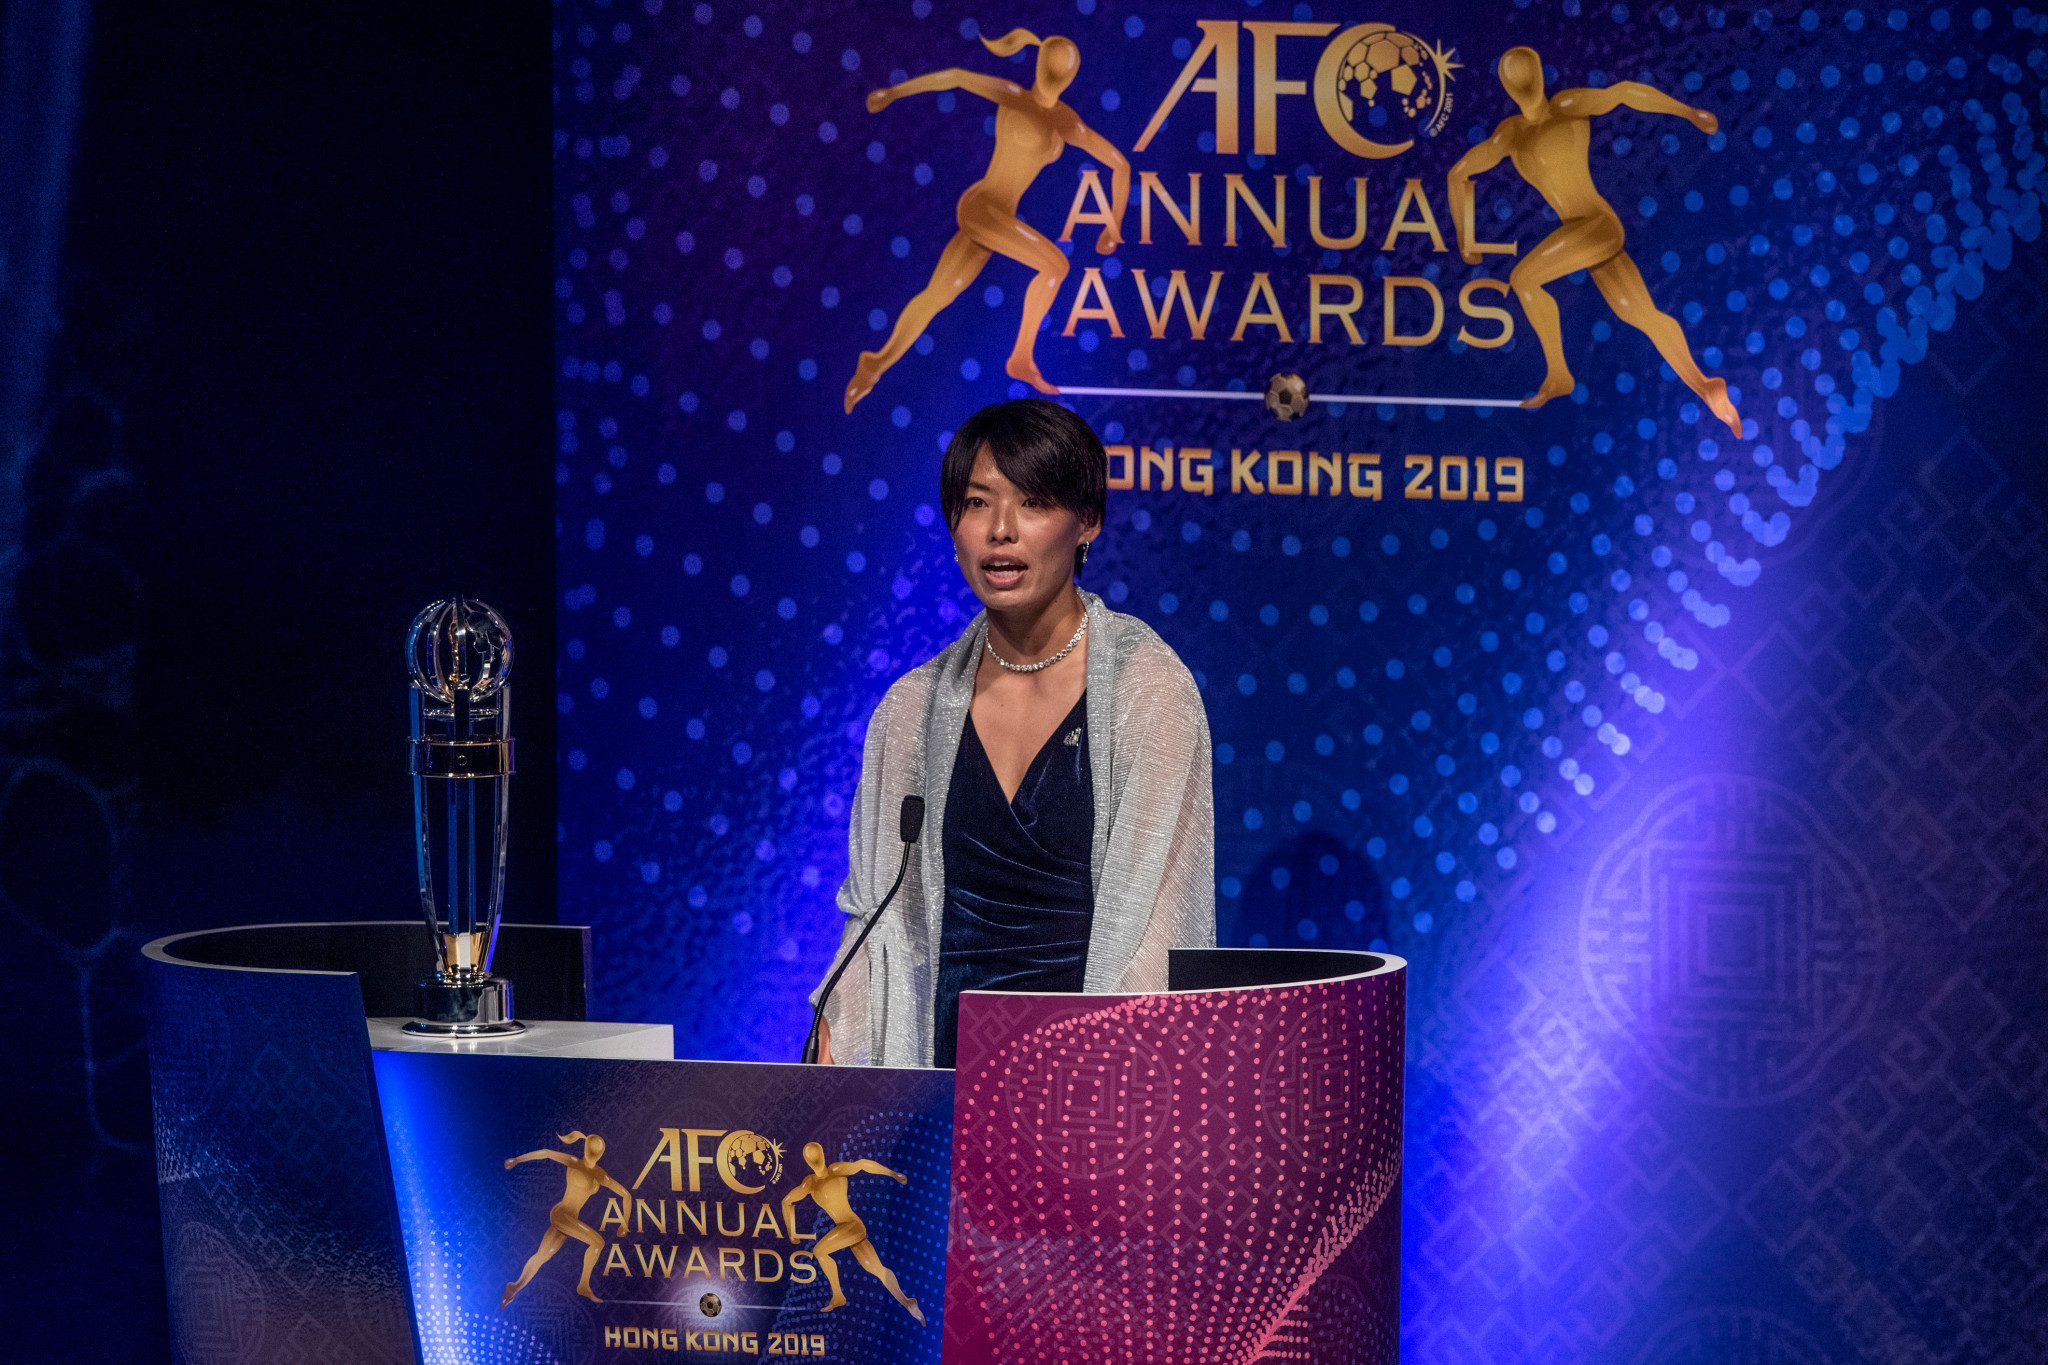 The AFC Annual Awards have not been held since 2019 in Hong Kong ©Getty Images